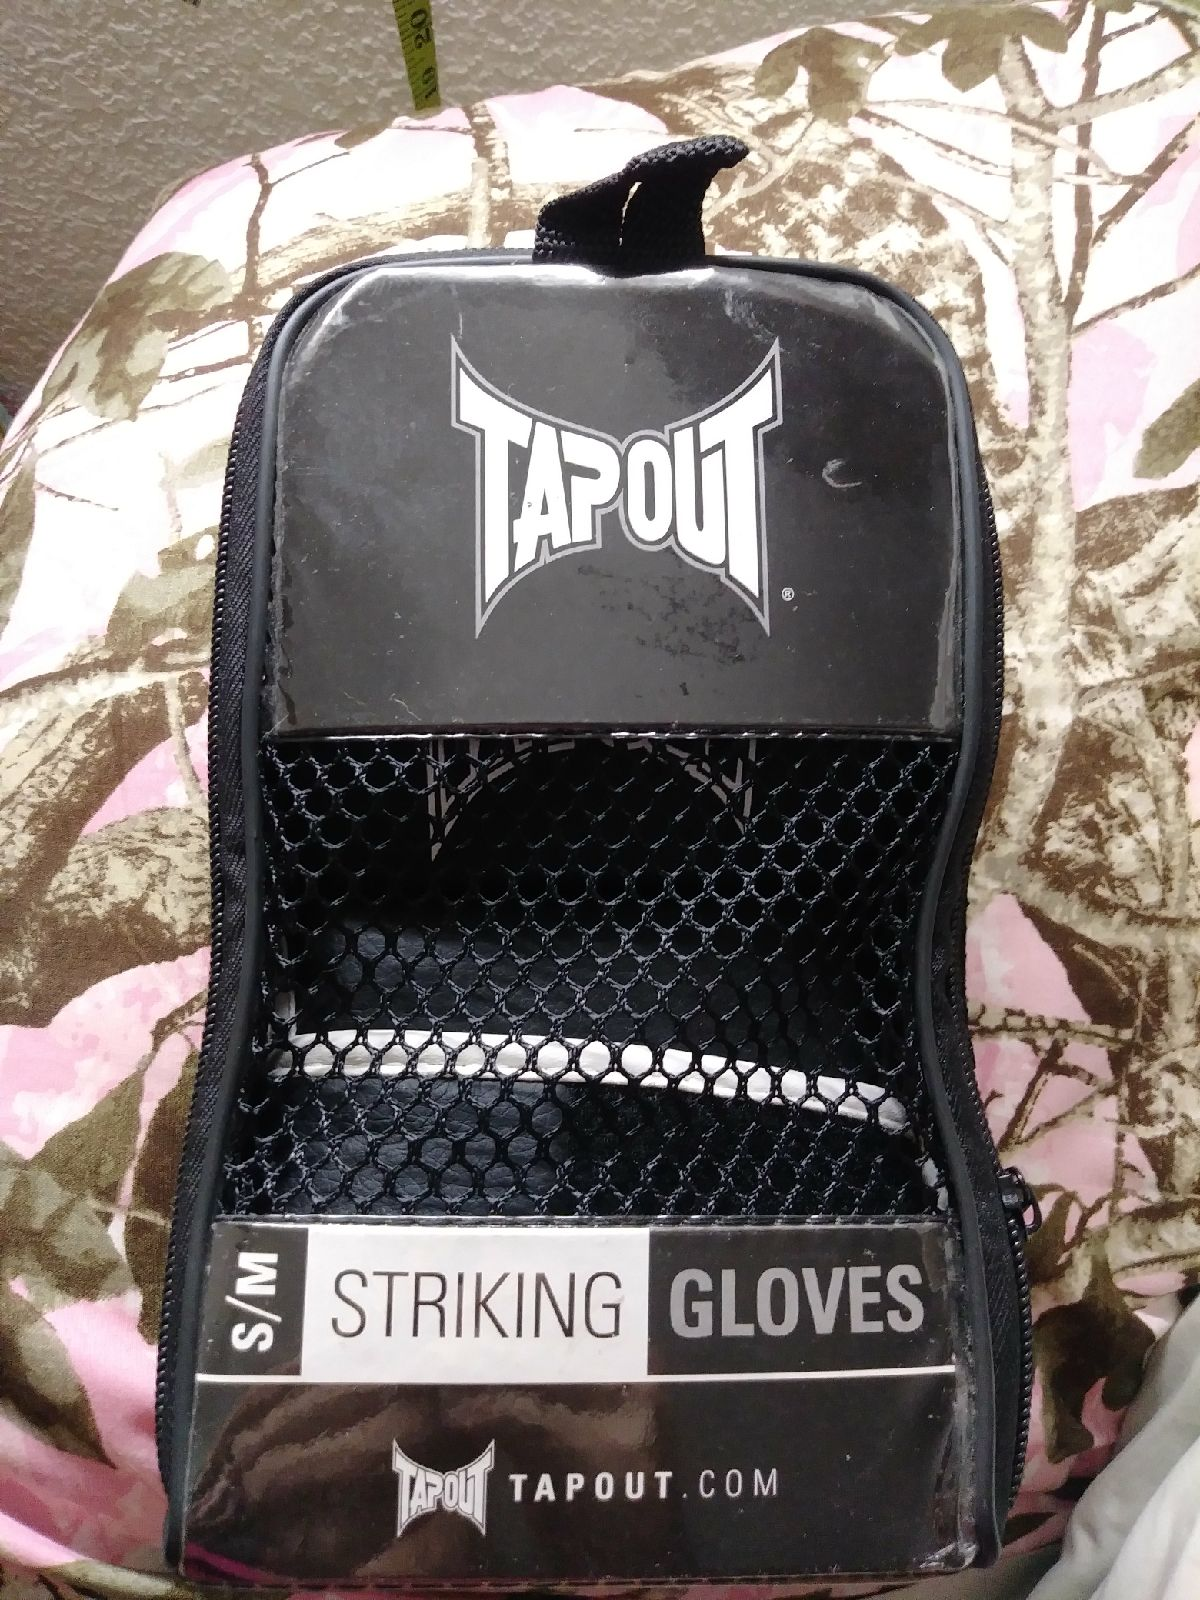 Tap out striking Glove